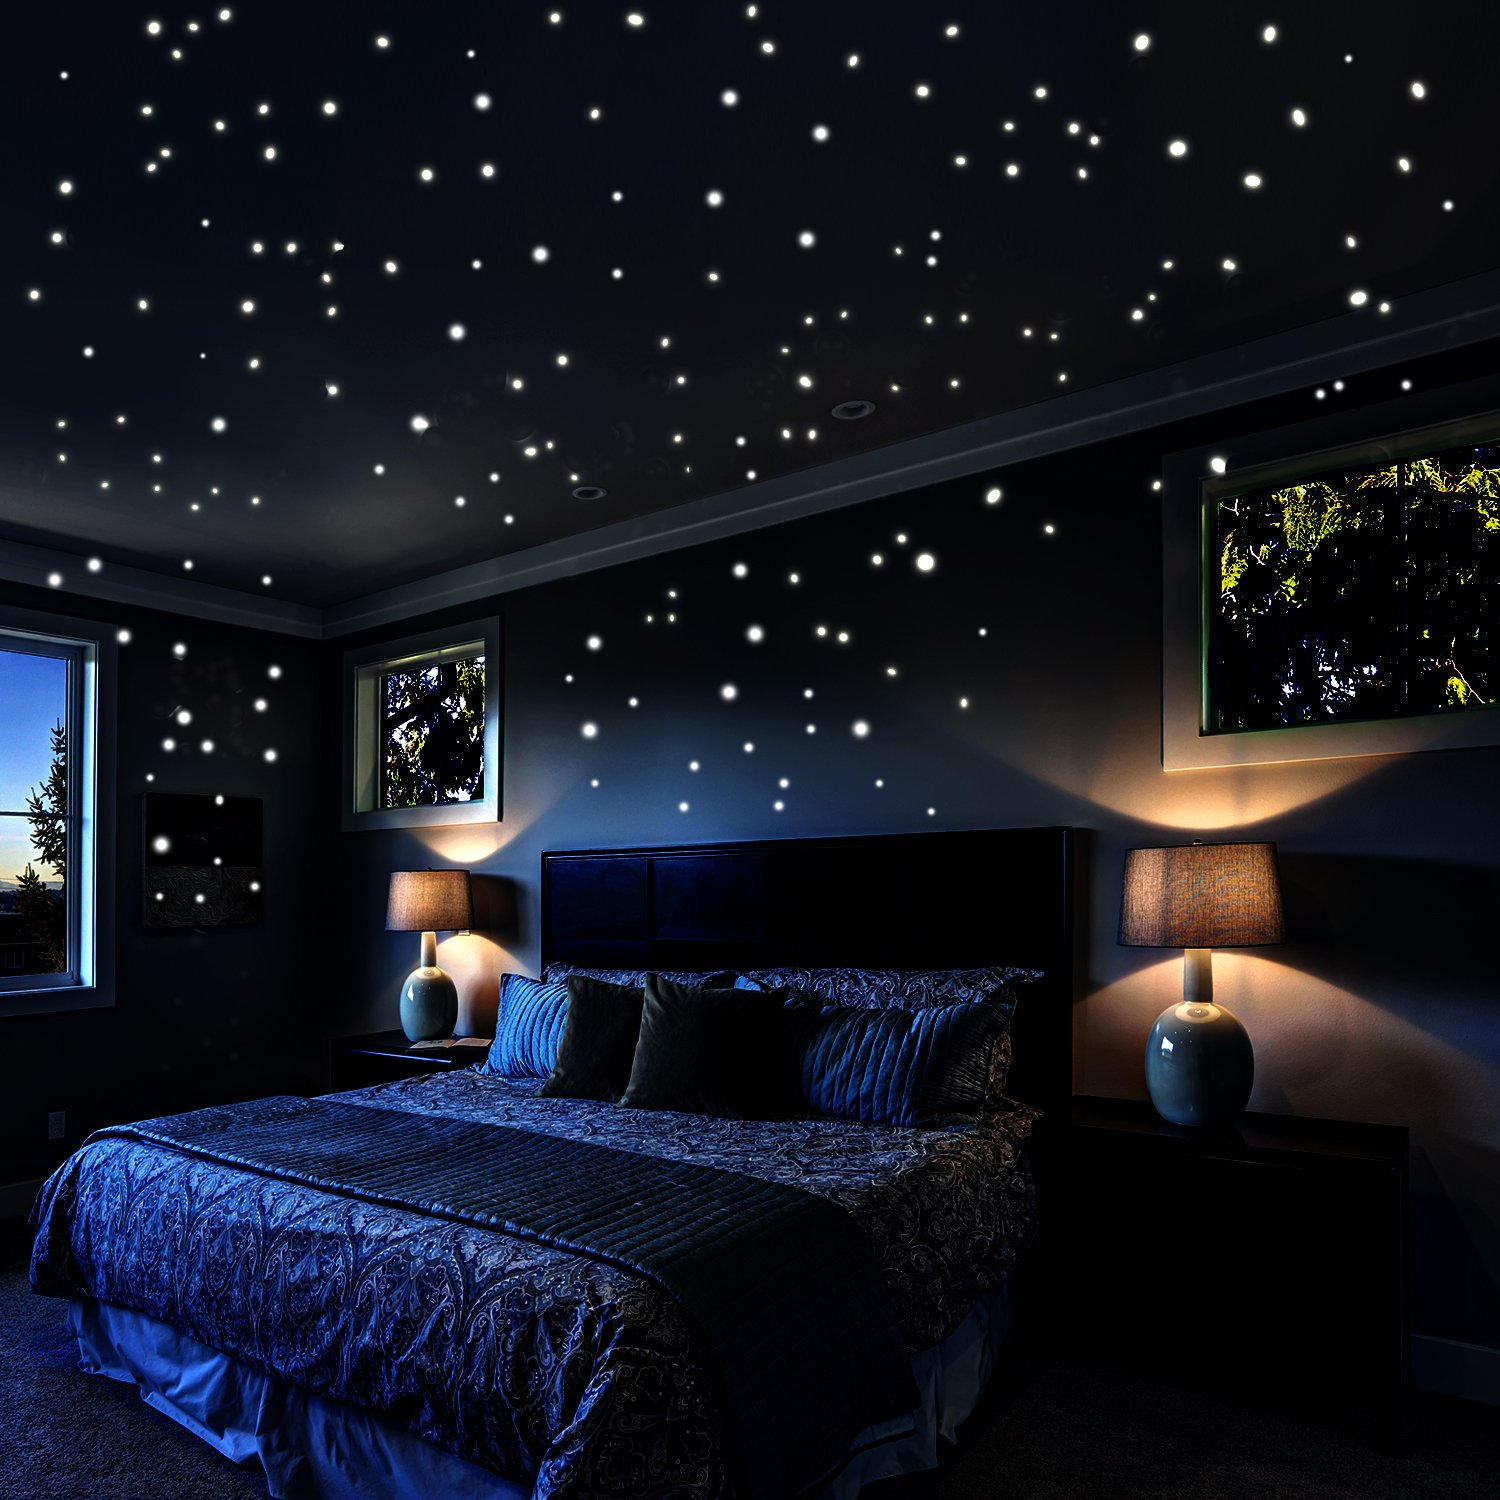 Airbin Glow in The Dark Stars Wall Stickers, 730 pcs Dots and Moon for The Galaxy, Gifts for Kids Bedding Room or Birthday, Wall Decals, Lighten The Love of Your Heart